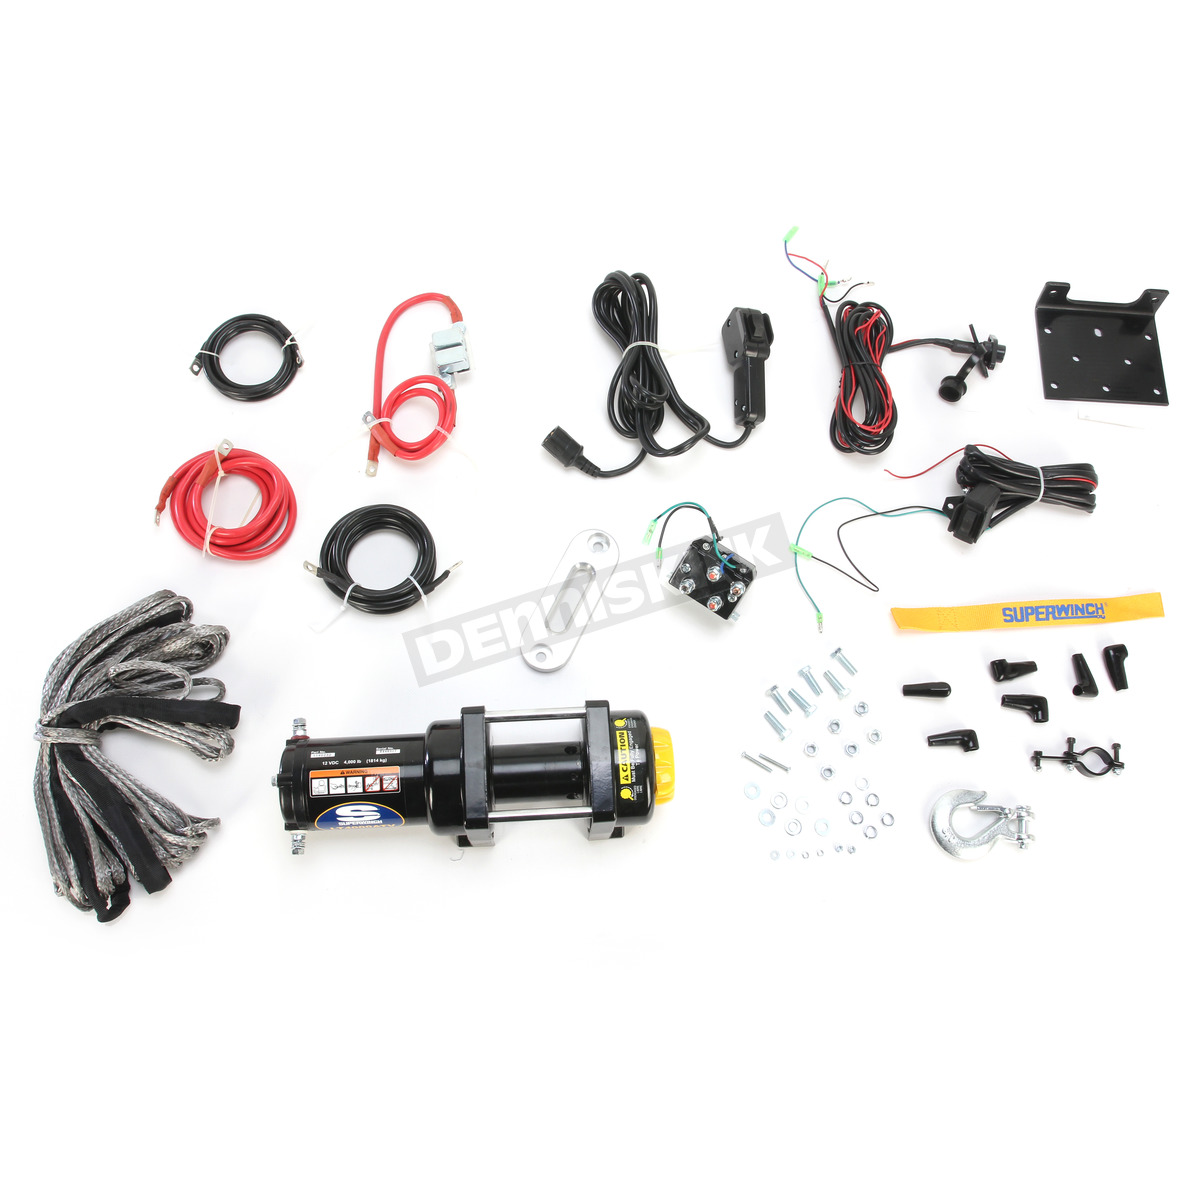 Superwinch LT4000ATV SR 4000LB Winch with Synthetic Rope